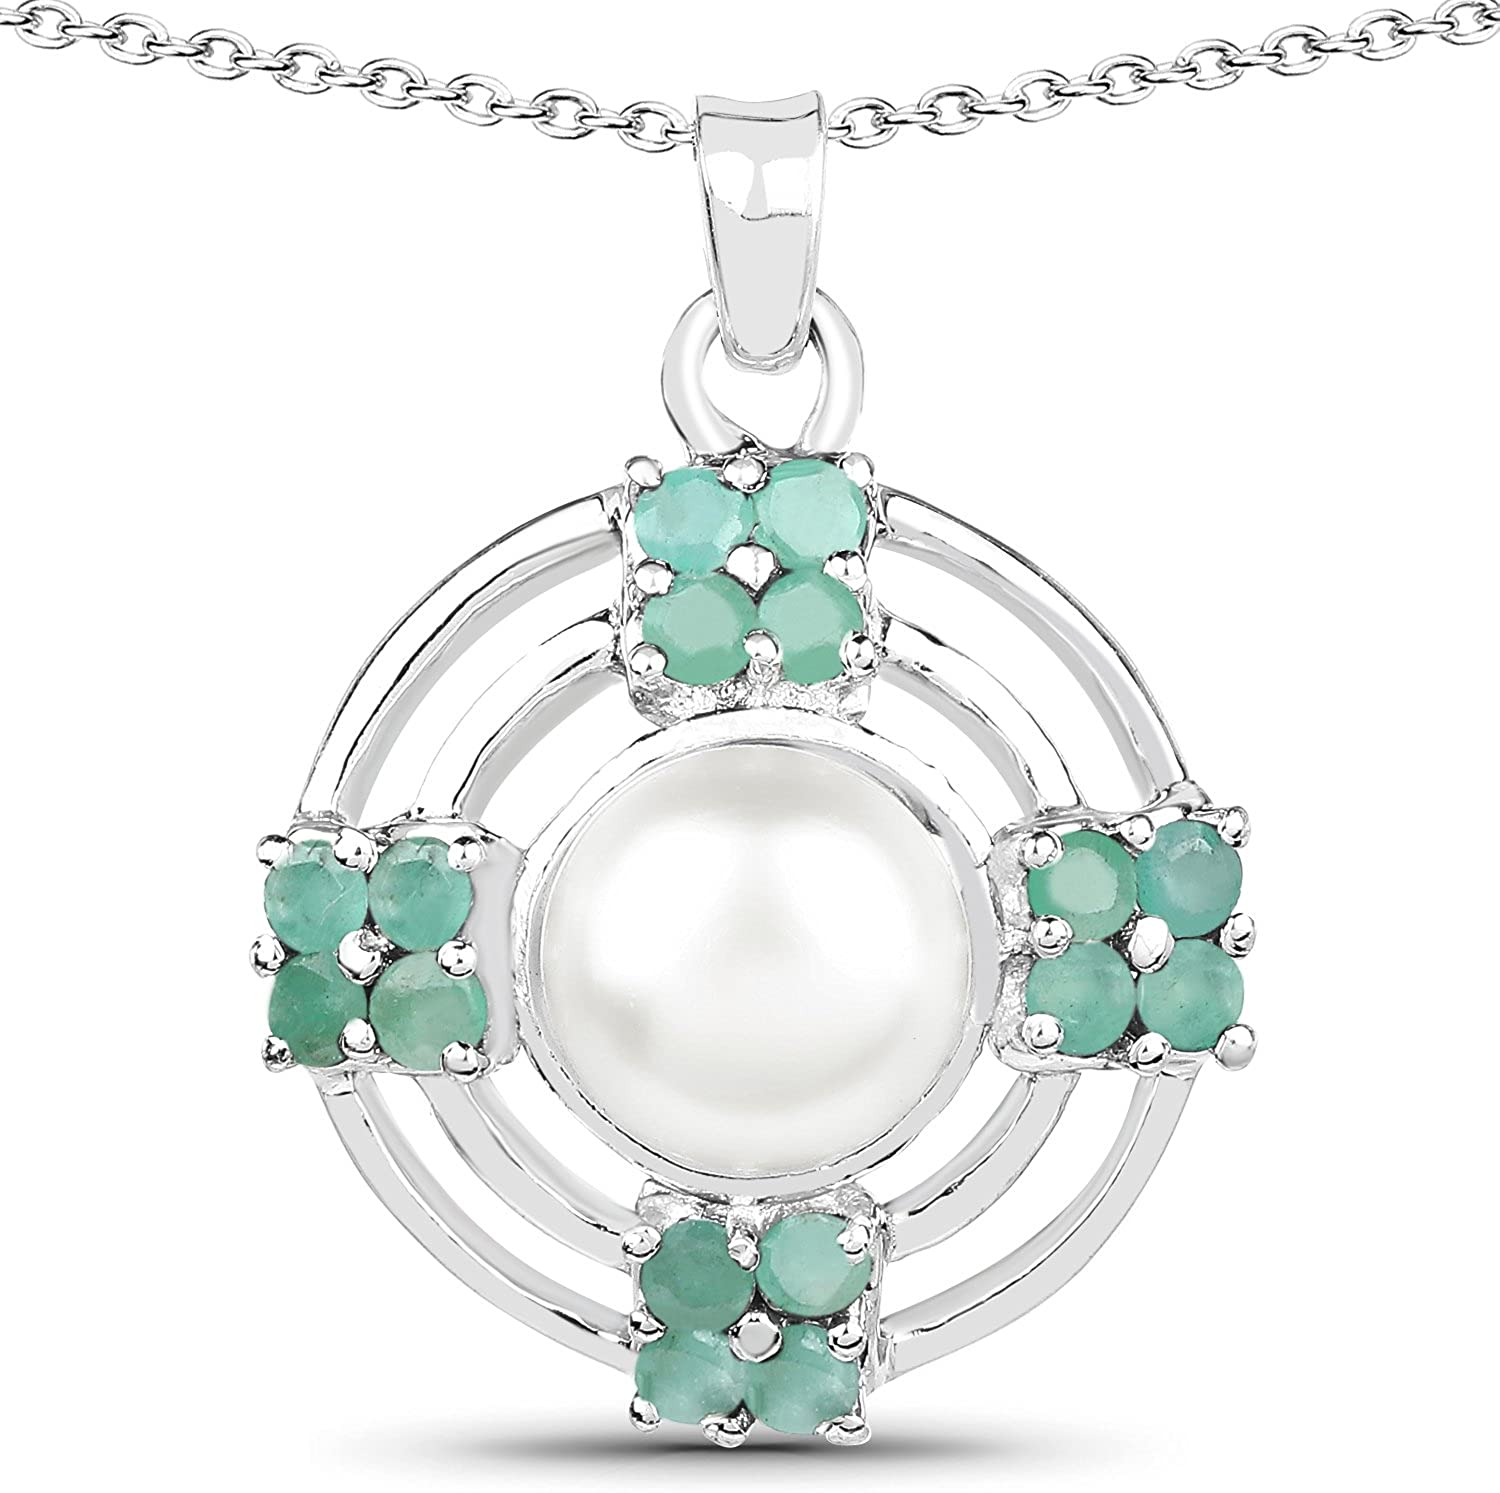 FB Jewels 3.98 Carat Genuine Pearl and Emerald 925 Sterling Silver Pendant Length 1.02 Inches